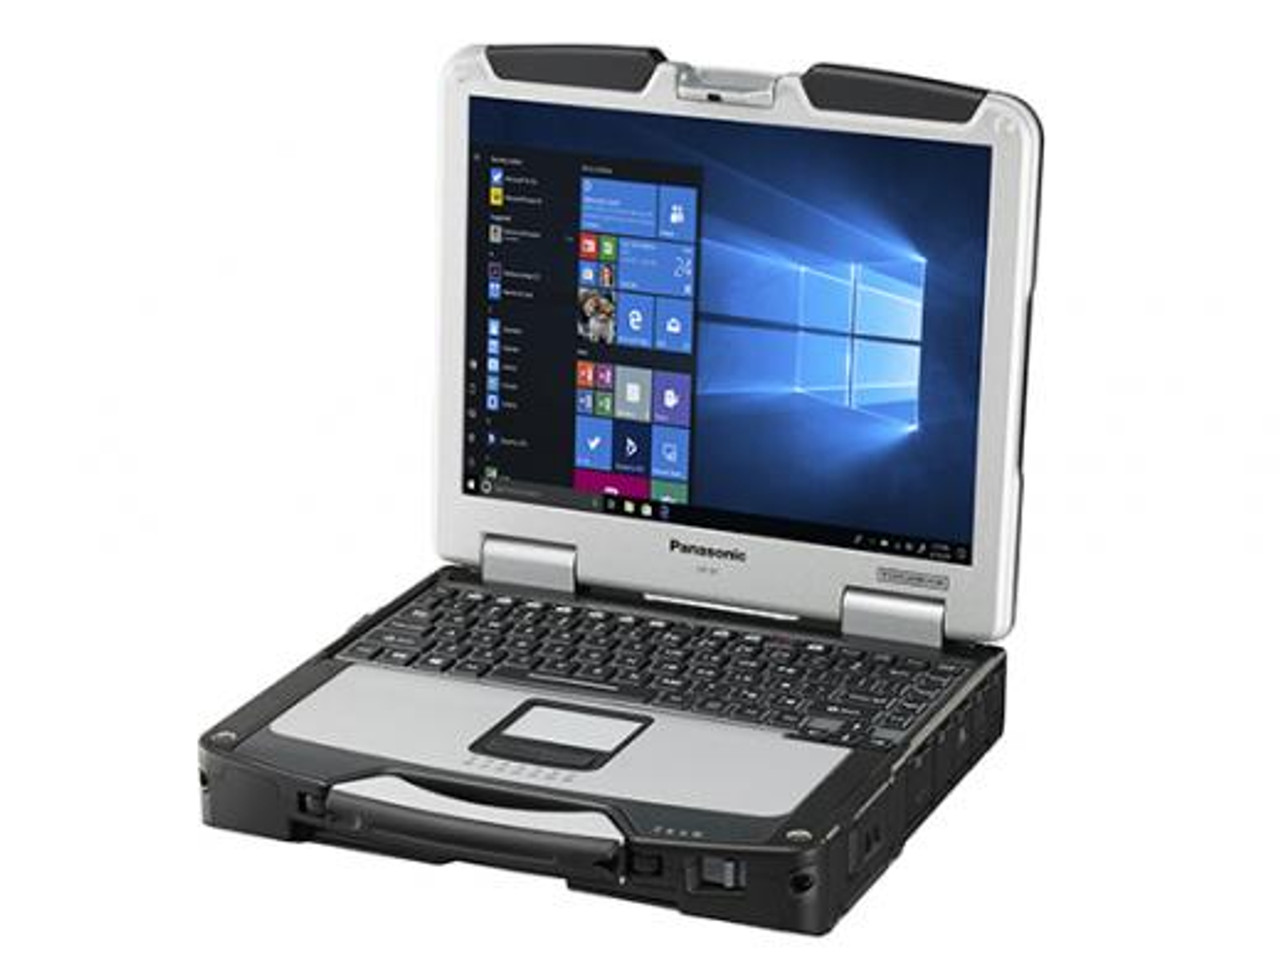 Panasonic Toughbook CF-31 MK6